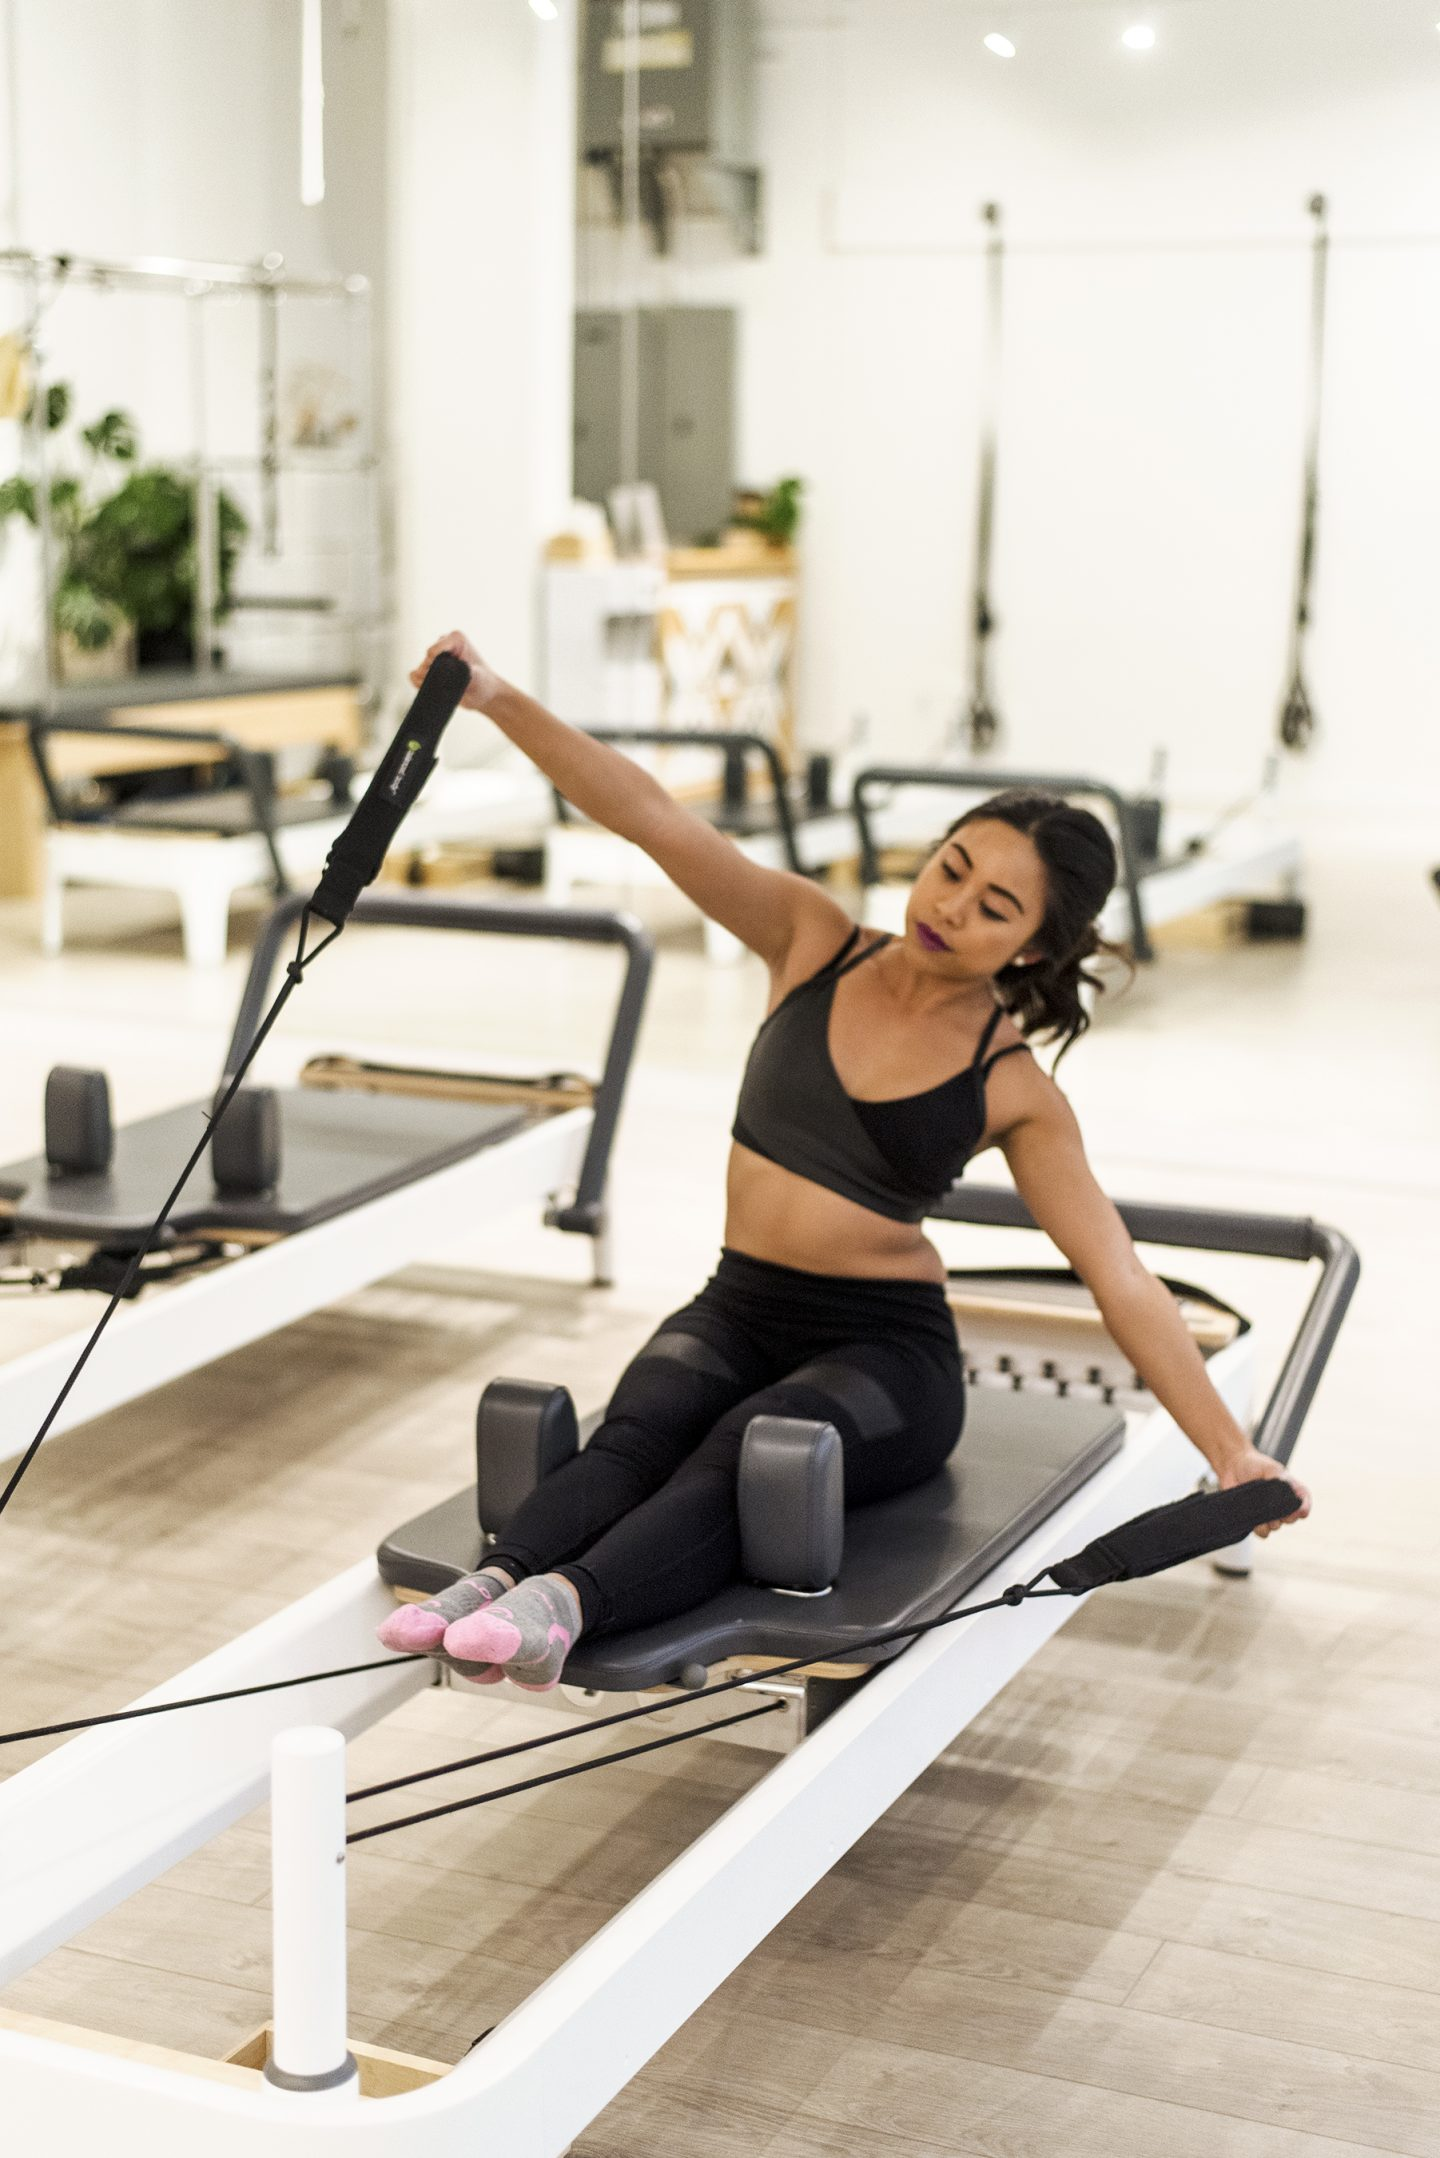 Sitting on the carriage of the reformer - reformer pilates